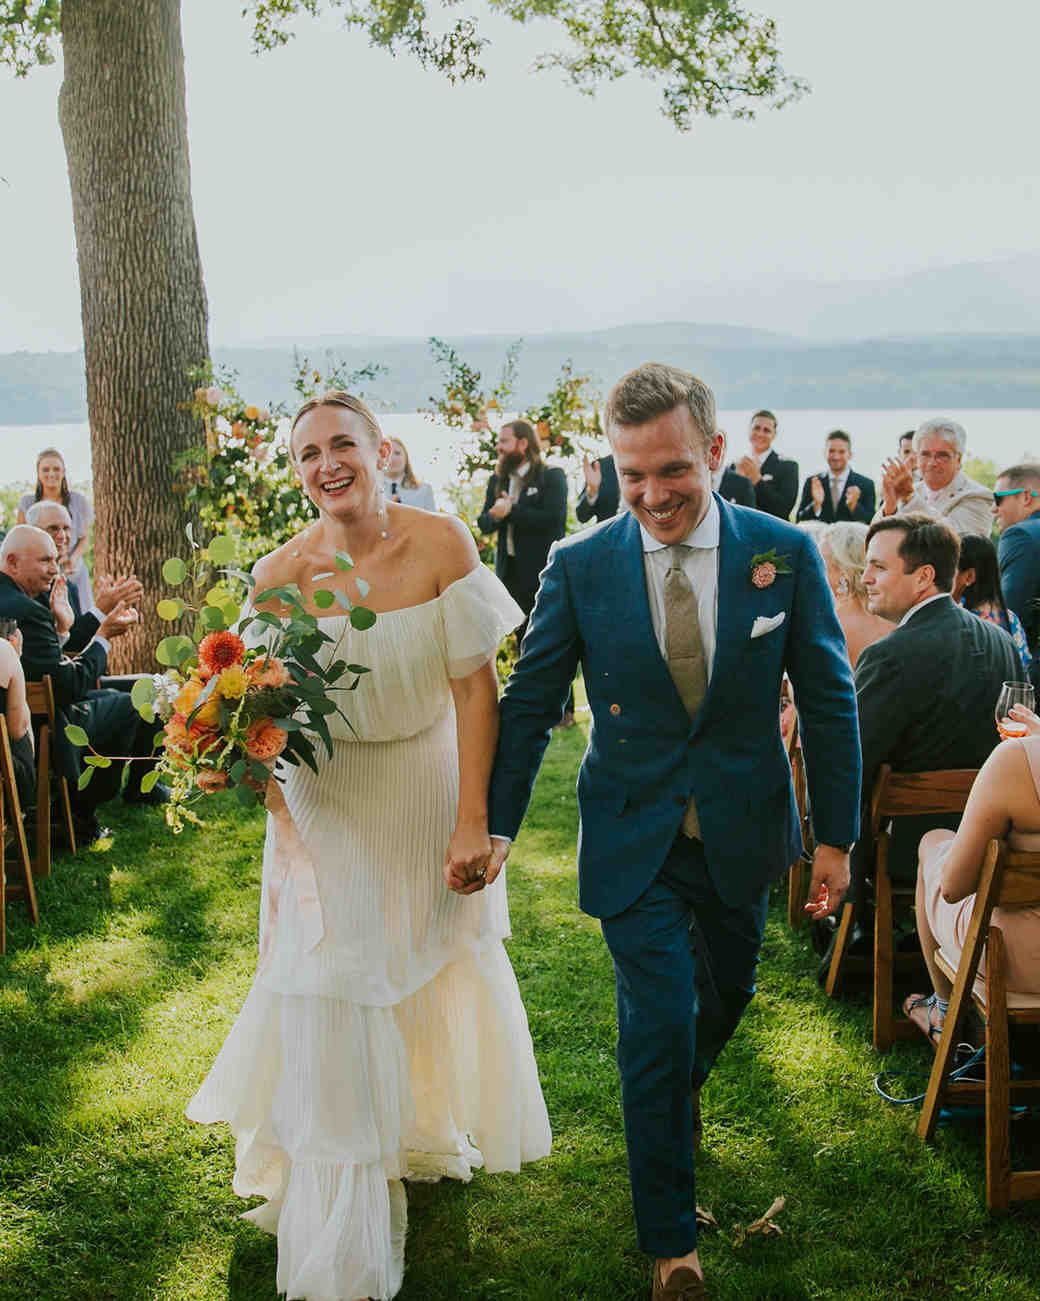 wedding recessional with hudson river in background